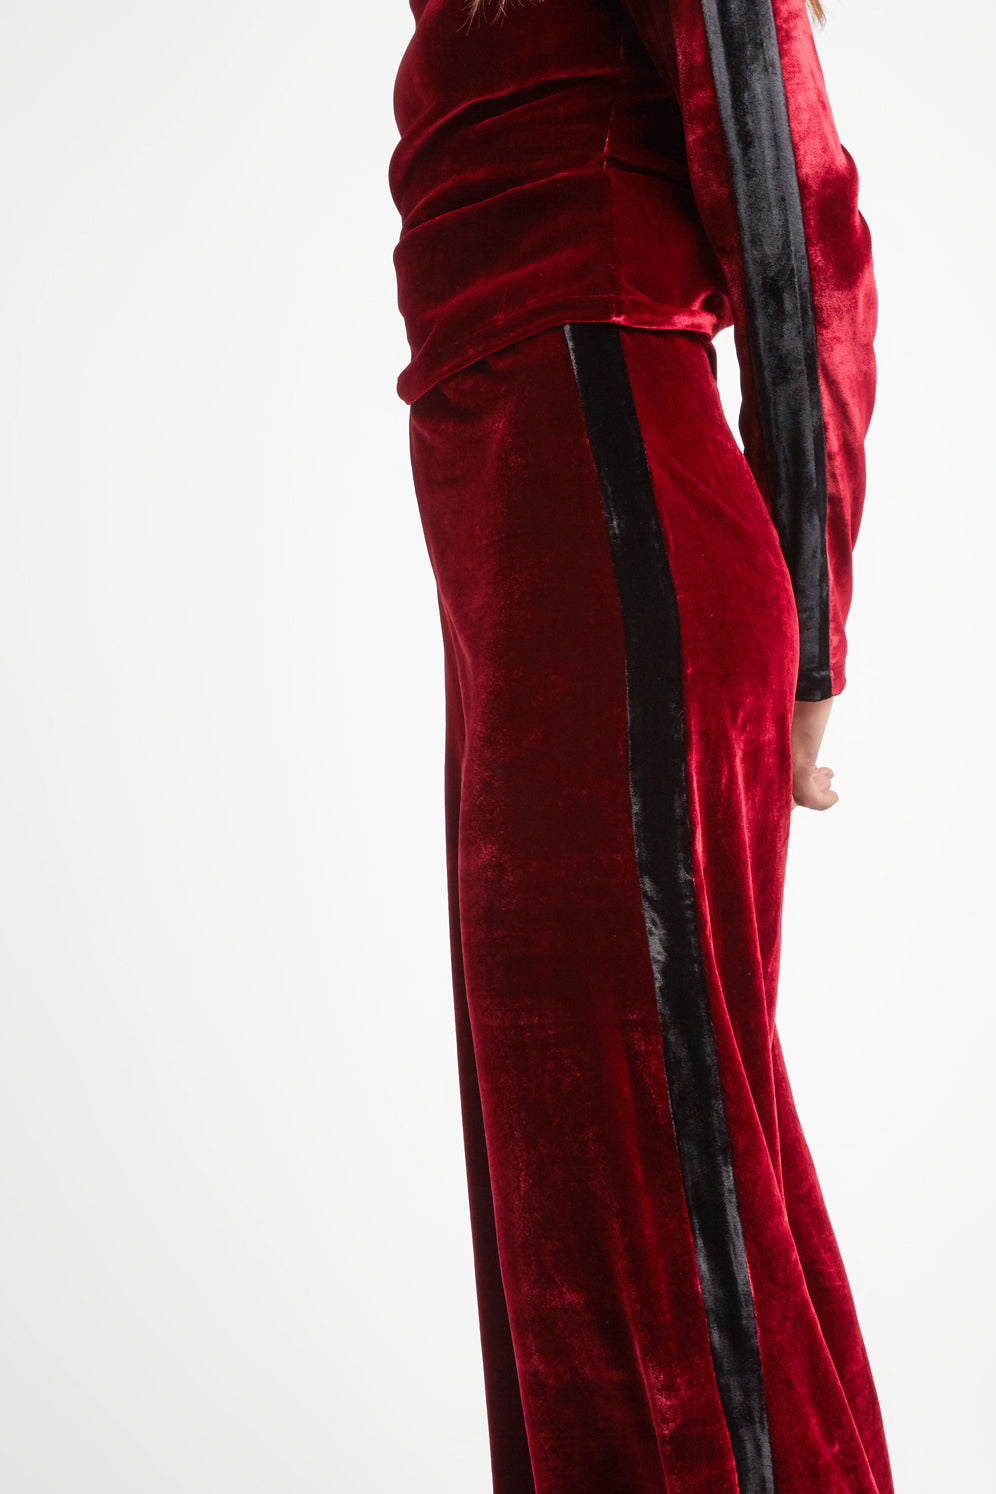 The Flare Trousers - Burgundy & Black Stretch Velvet - SERENA BUTE